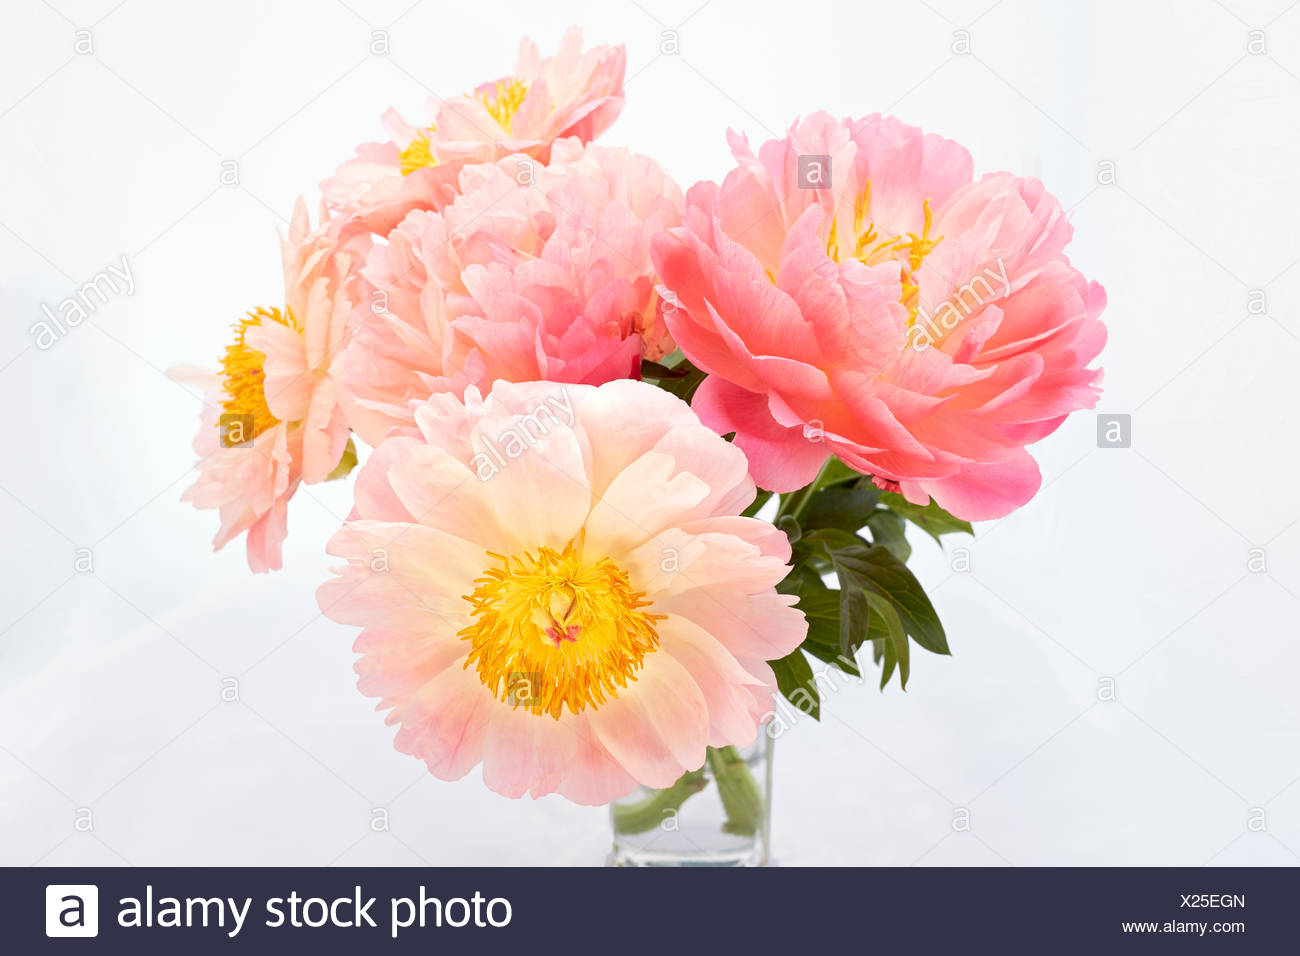 Peonies (Paeonia) in a vase - Stock Image